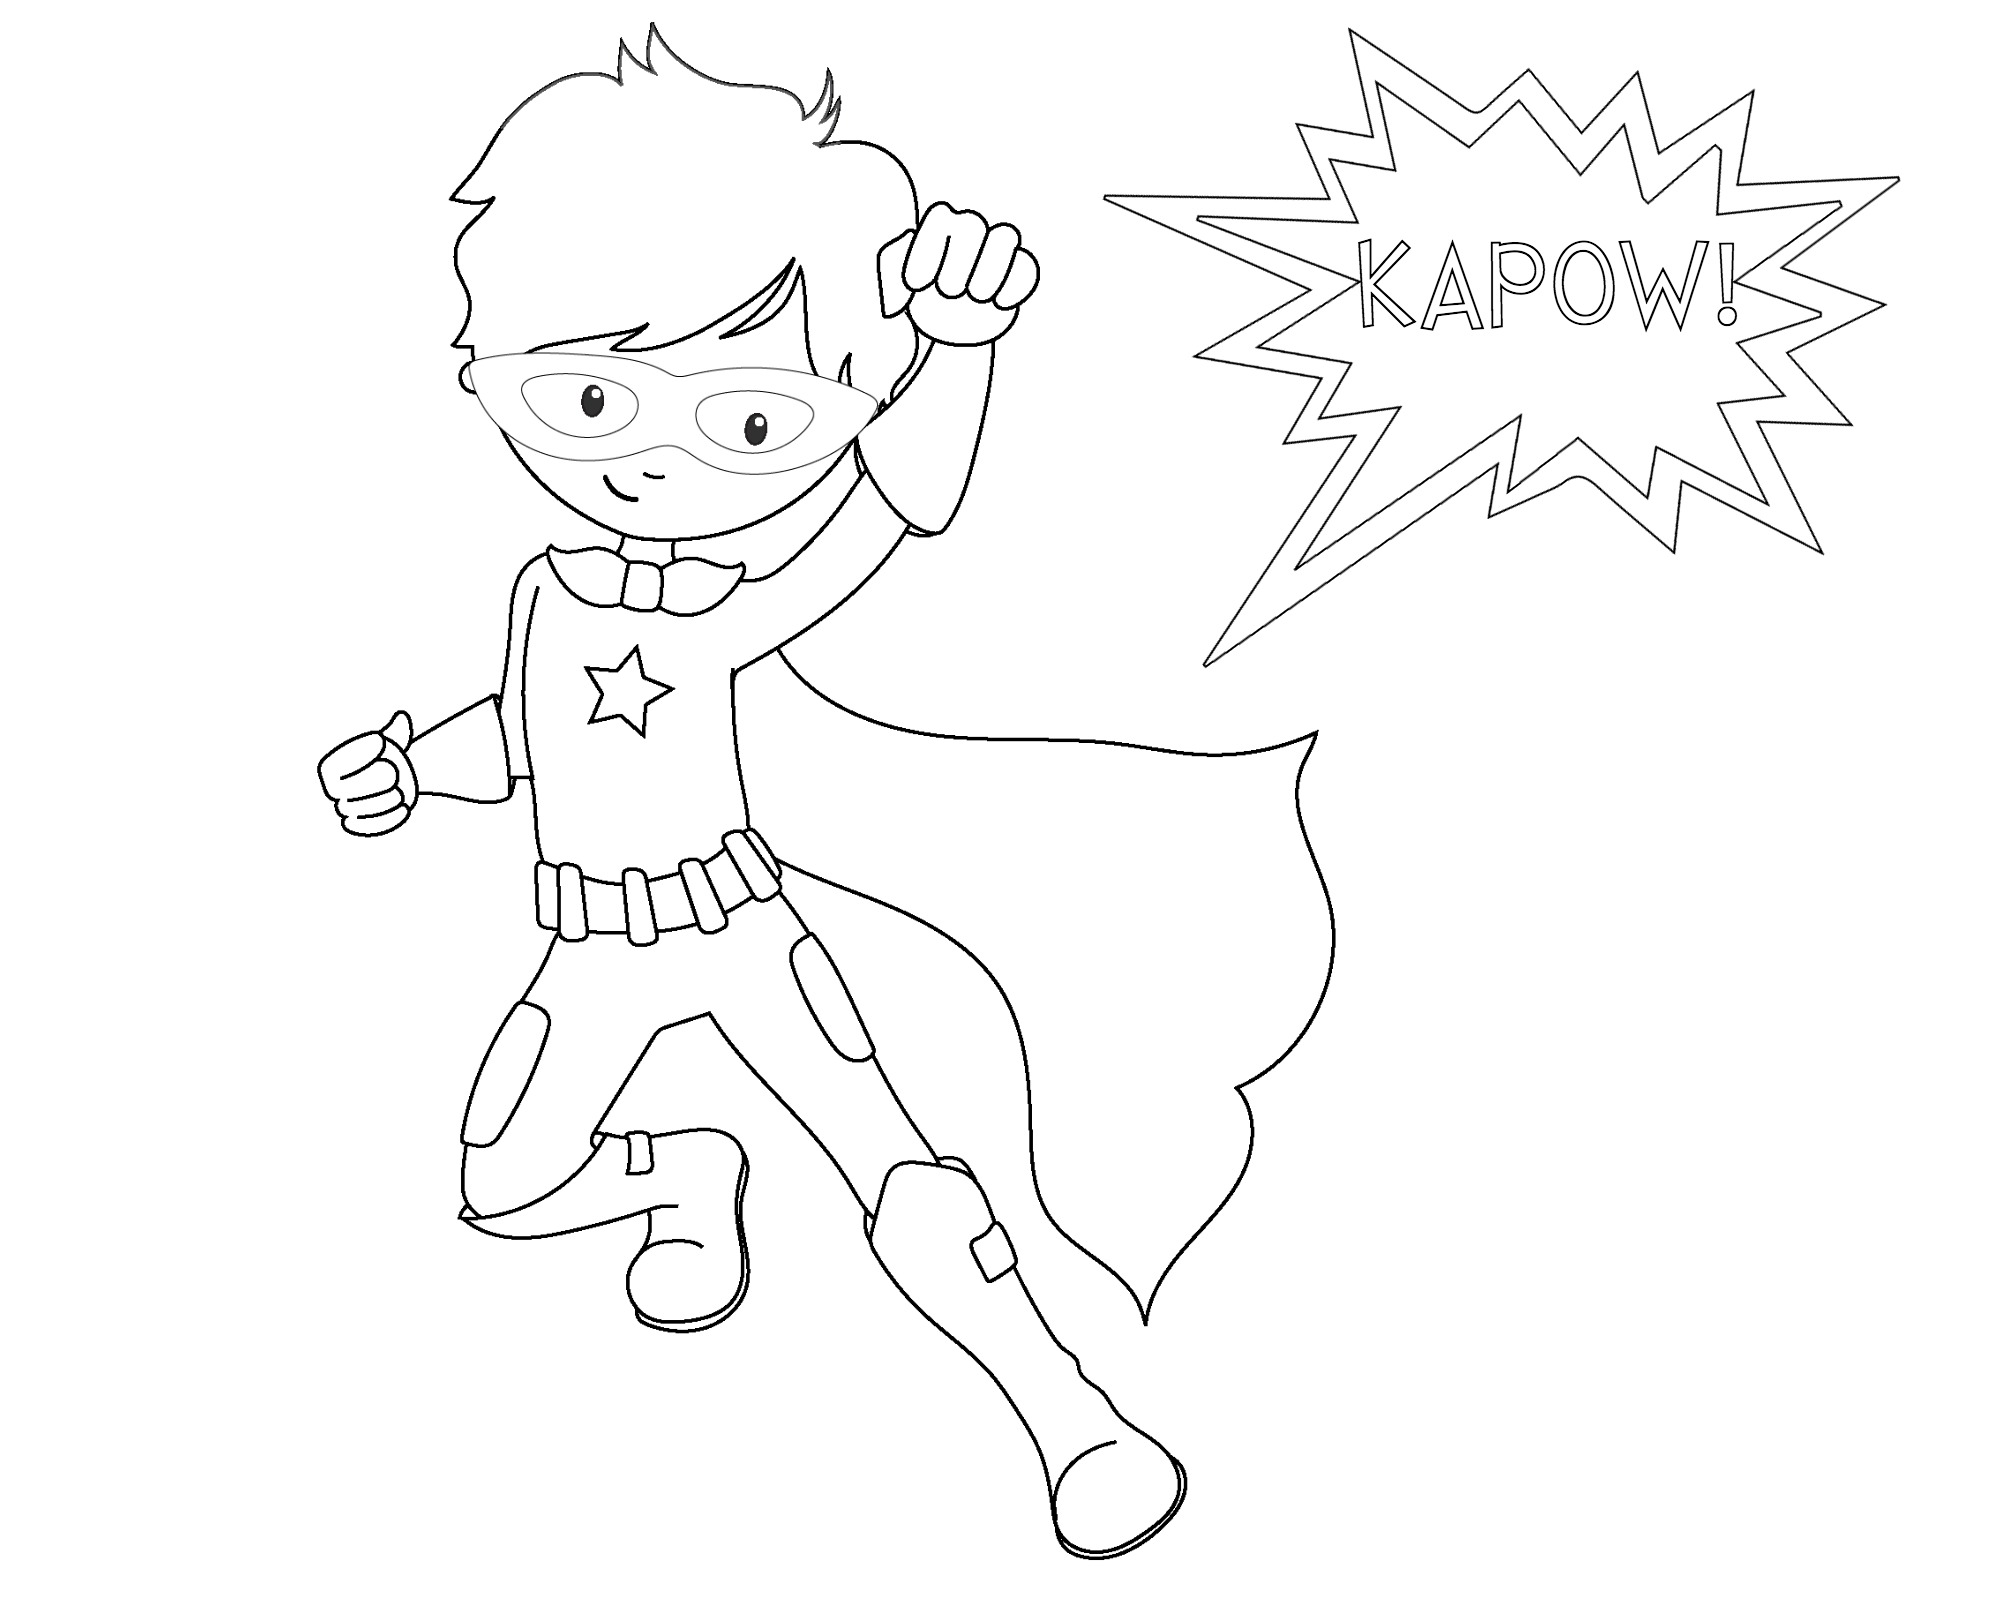 Coloring Pages For Adults Superheroes : Superhero coloring pages crazy little projects